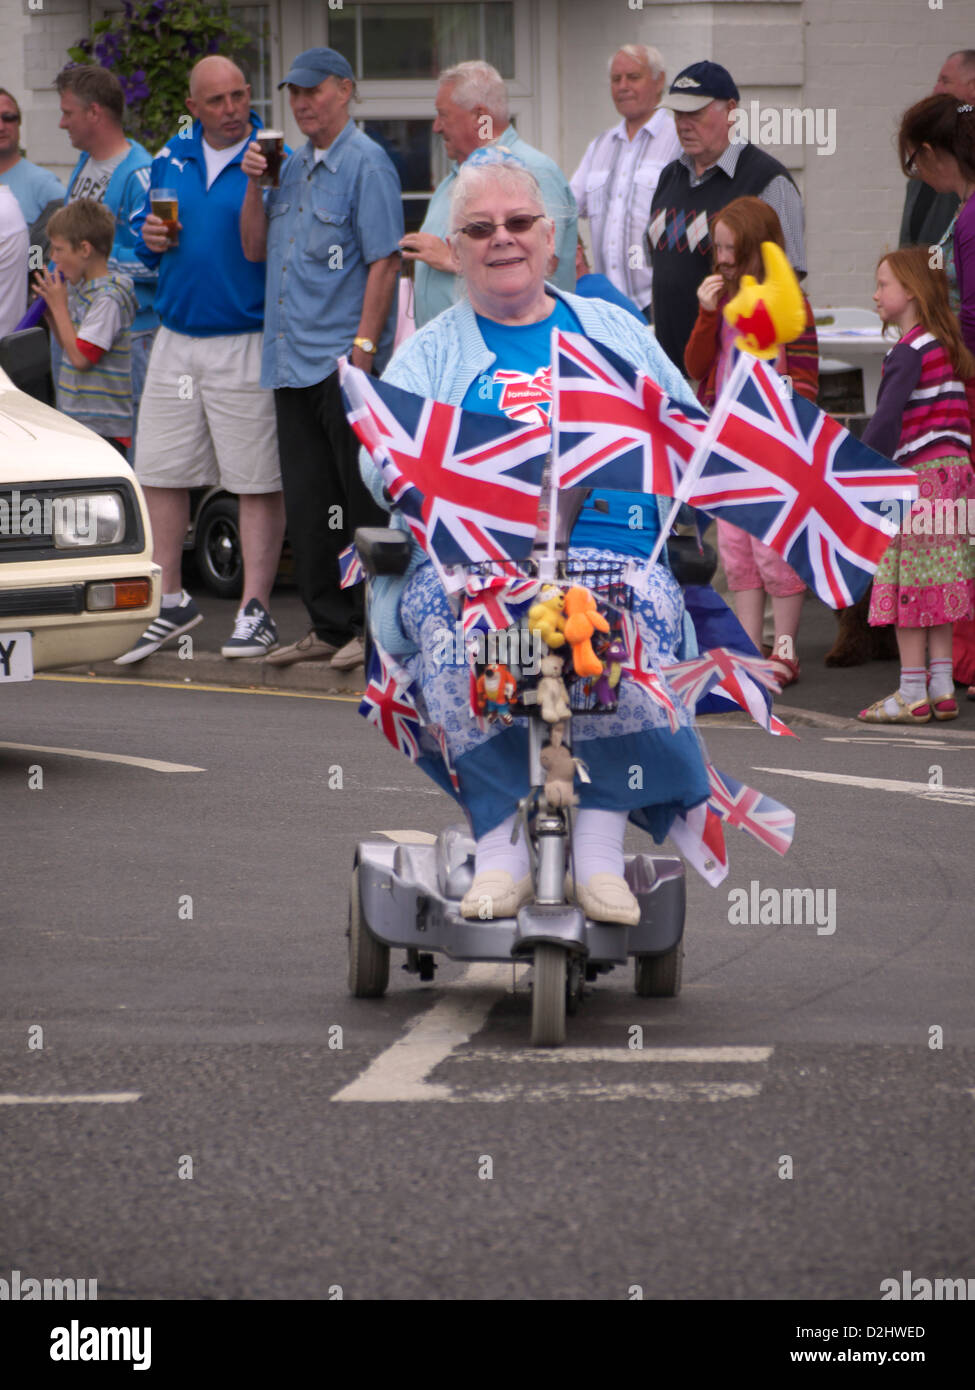 part of Sutton on Sea carnival parade august 2012 - Stock Image